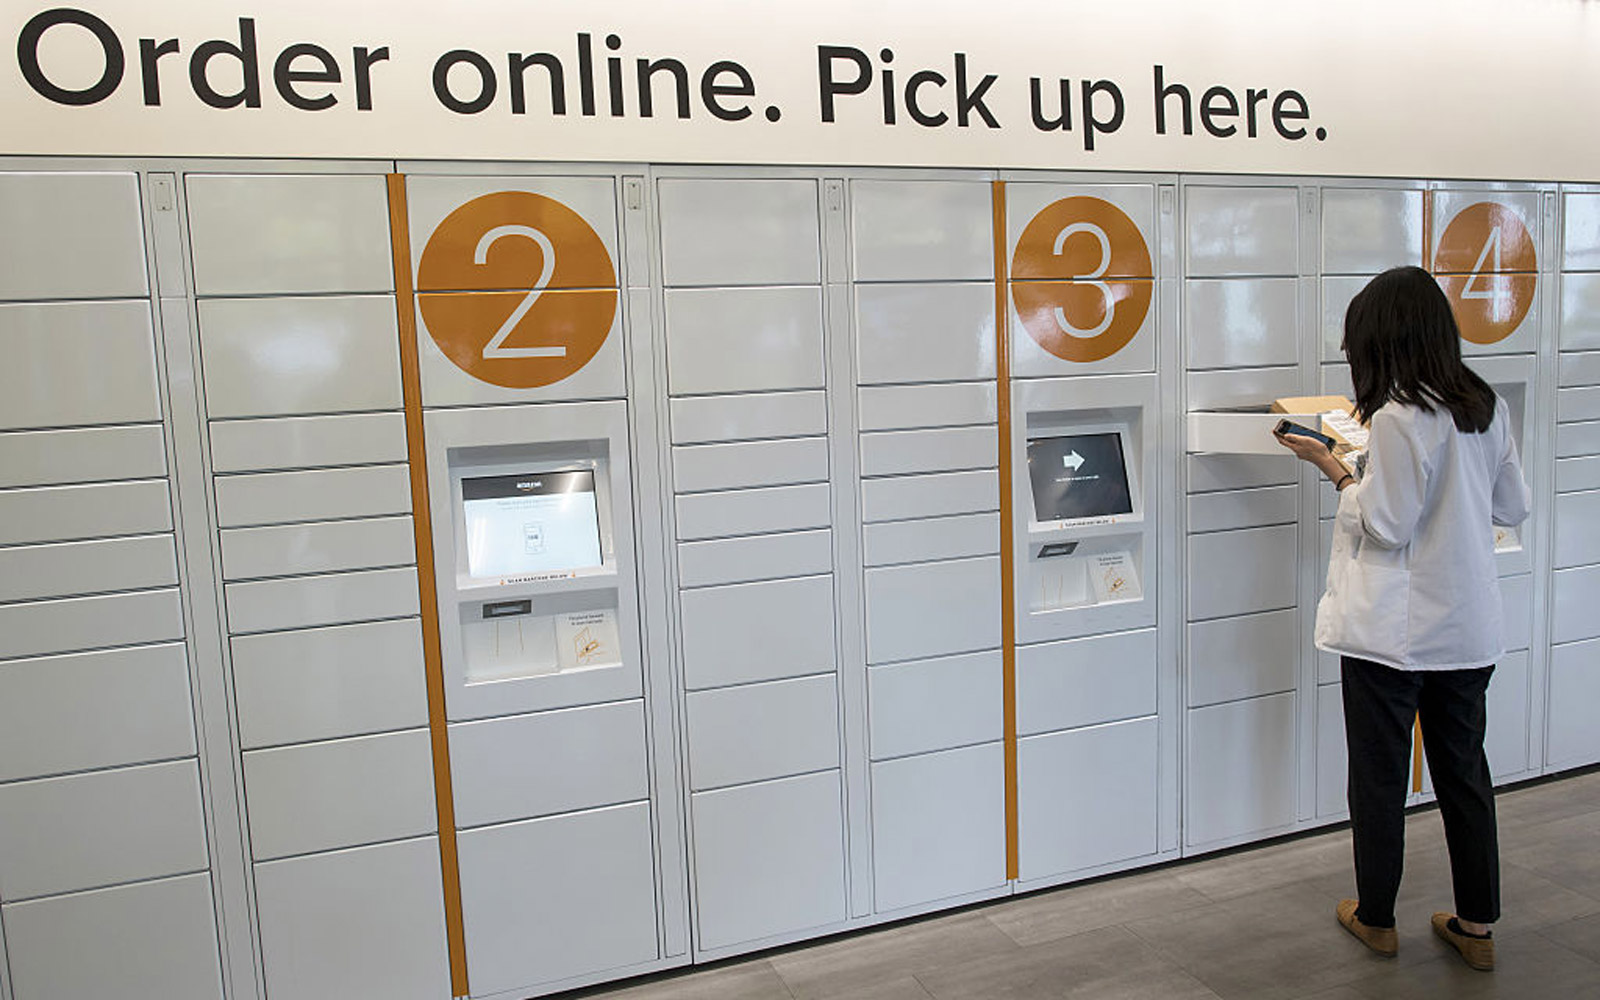 A student retrieves a package at the Amazon.com Inc. kiosk on the University of California, Berkeley campus in Berkeley, California, U.S., on Wednesday, Oct. 12, 2016. By the end of the year, Amazon will have staffed pickup kiosks serving more than 500,00